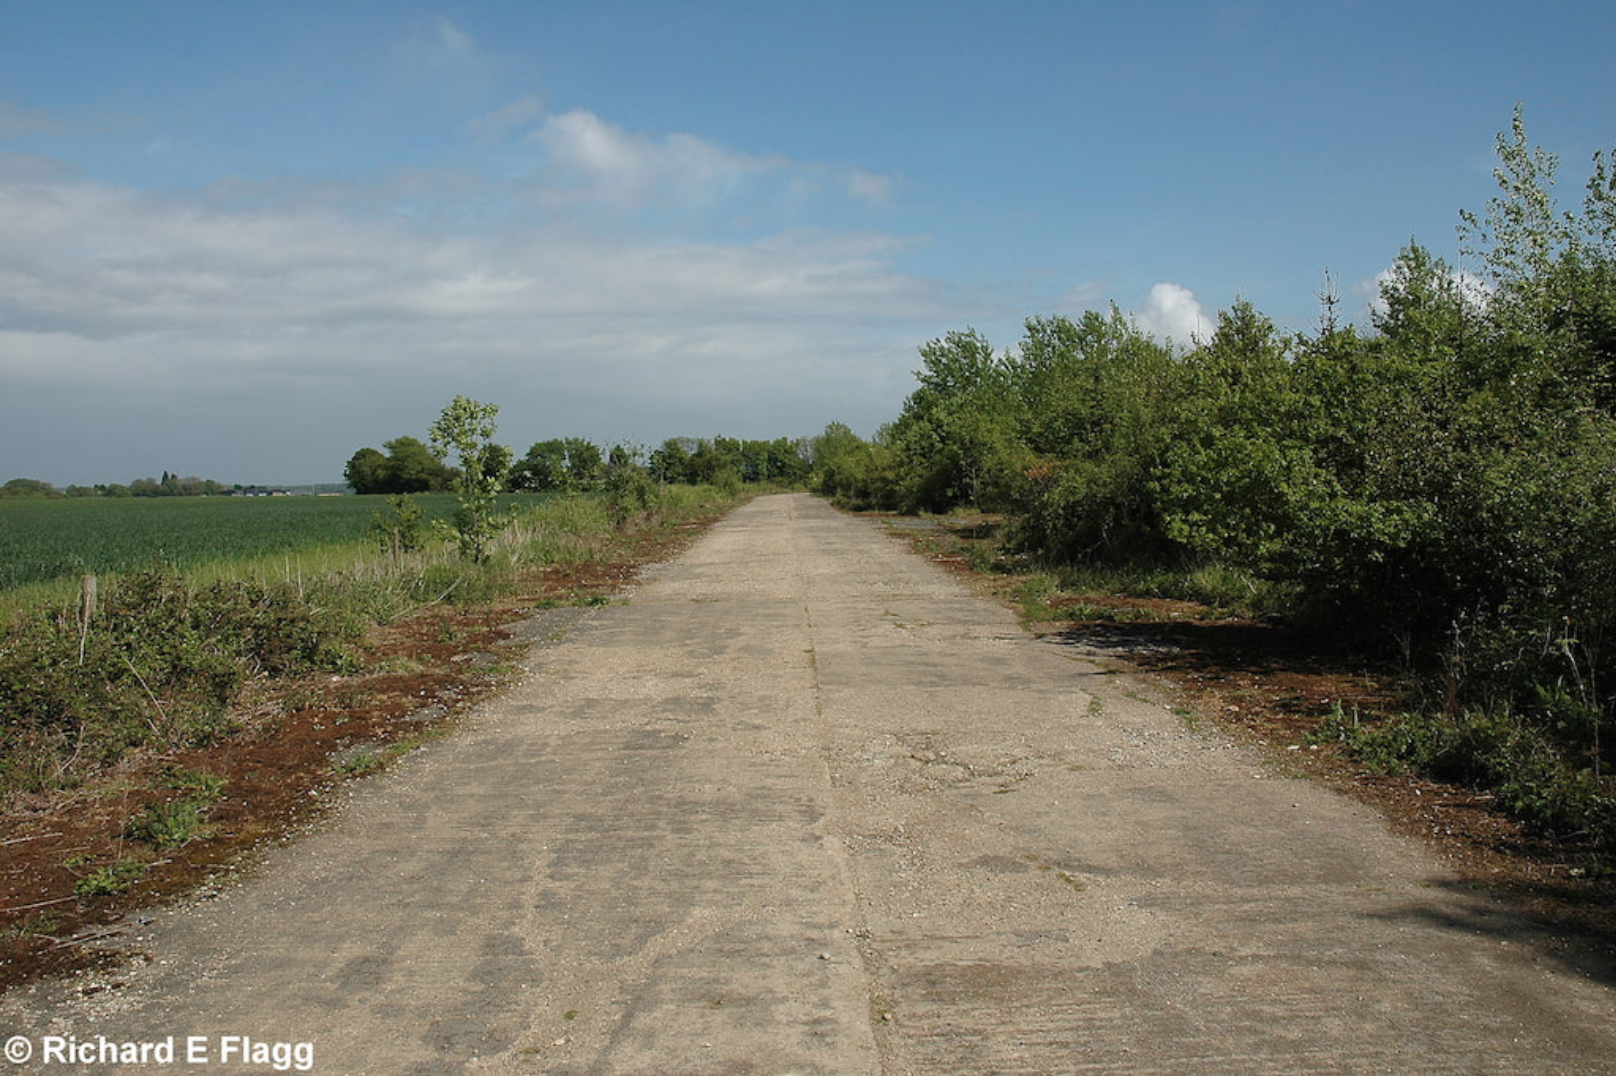 009Taxiway at the north of the airfield. Looking east - 16 May 2009.png